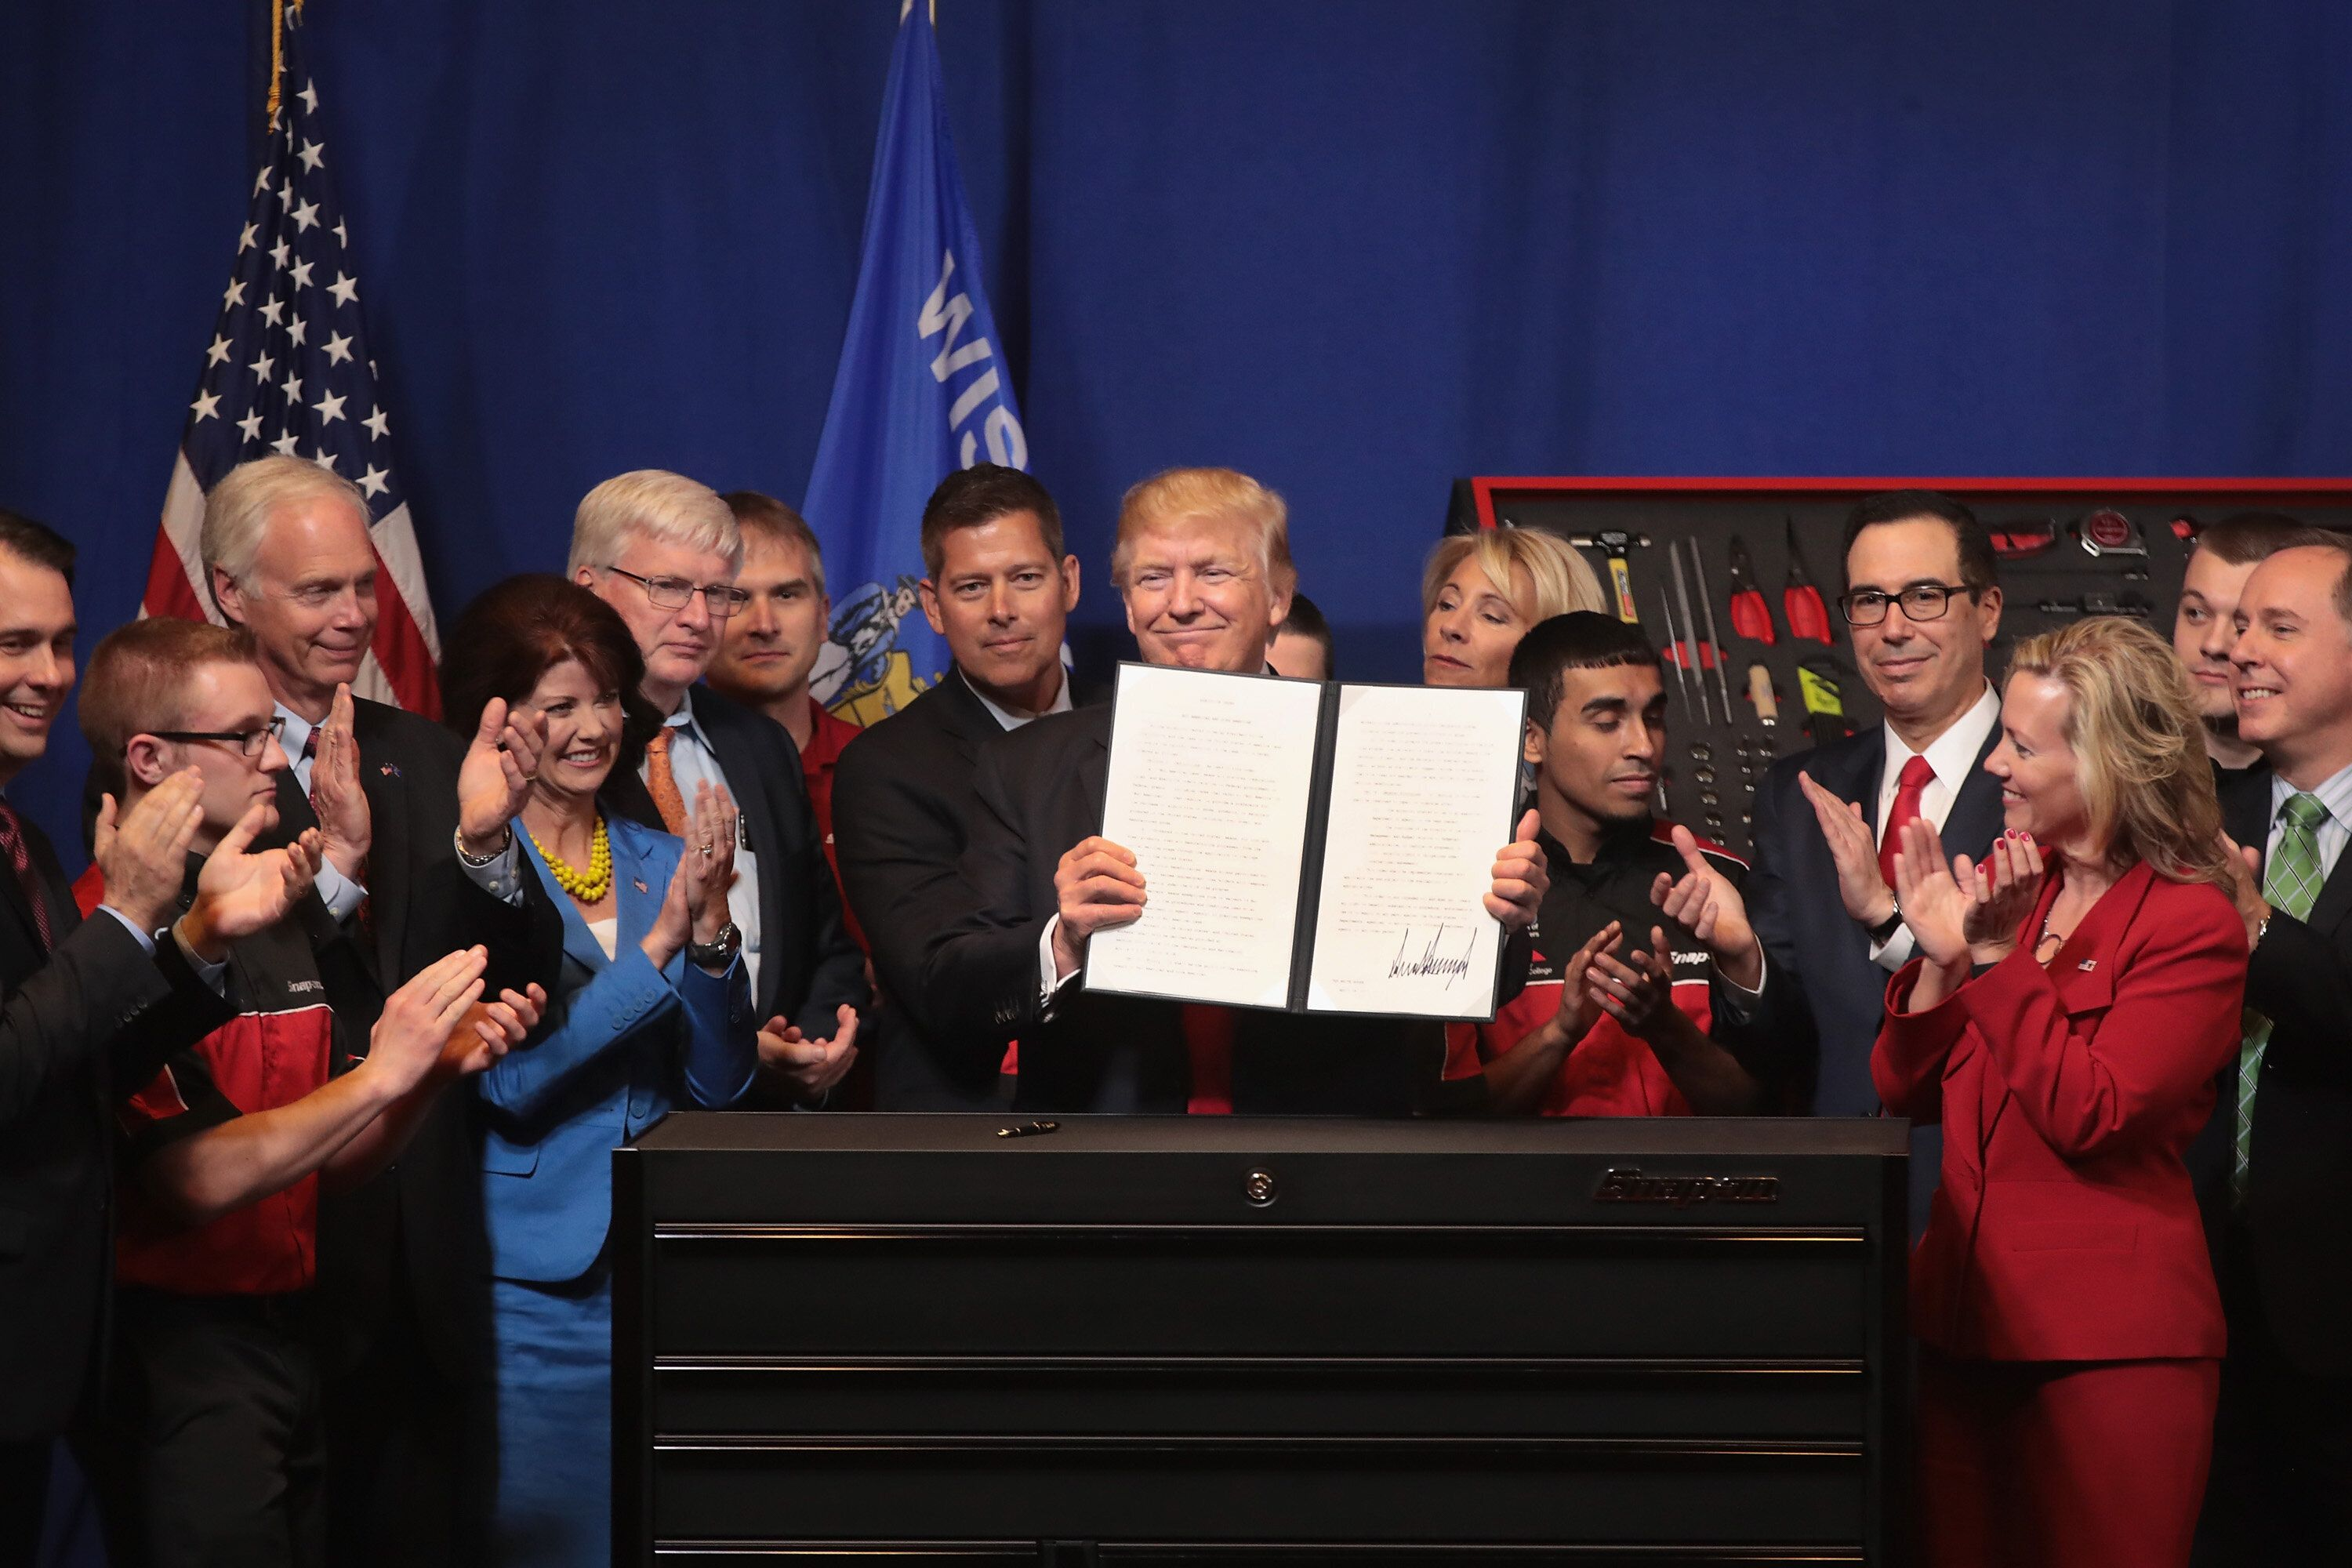 President Donald Trump signs an executive order to revamp the H-1B visa guest worker program and spur U.S. job growth during